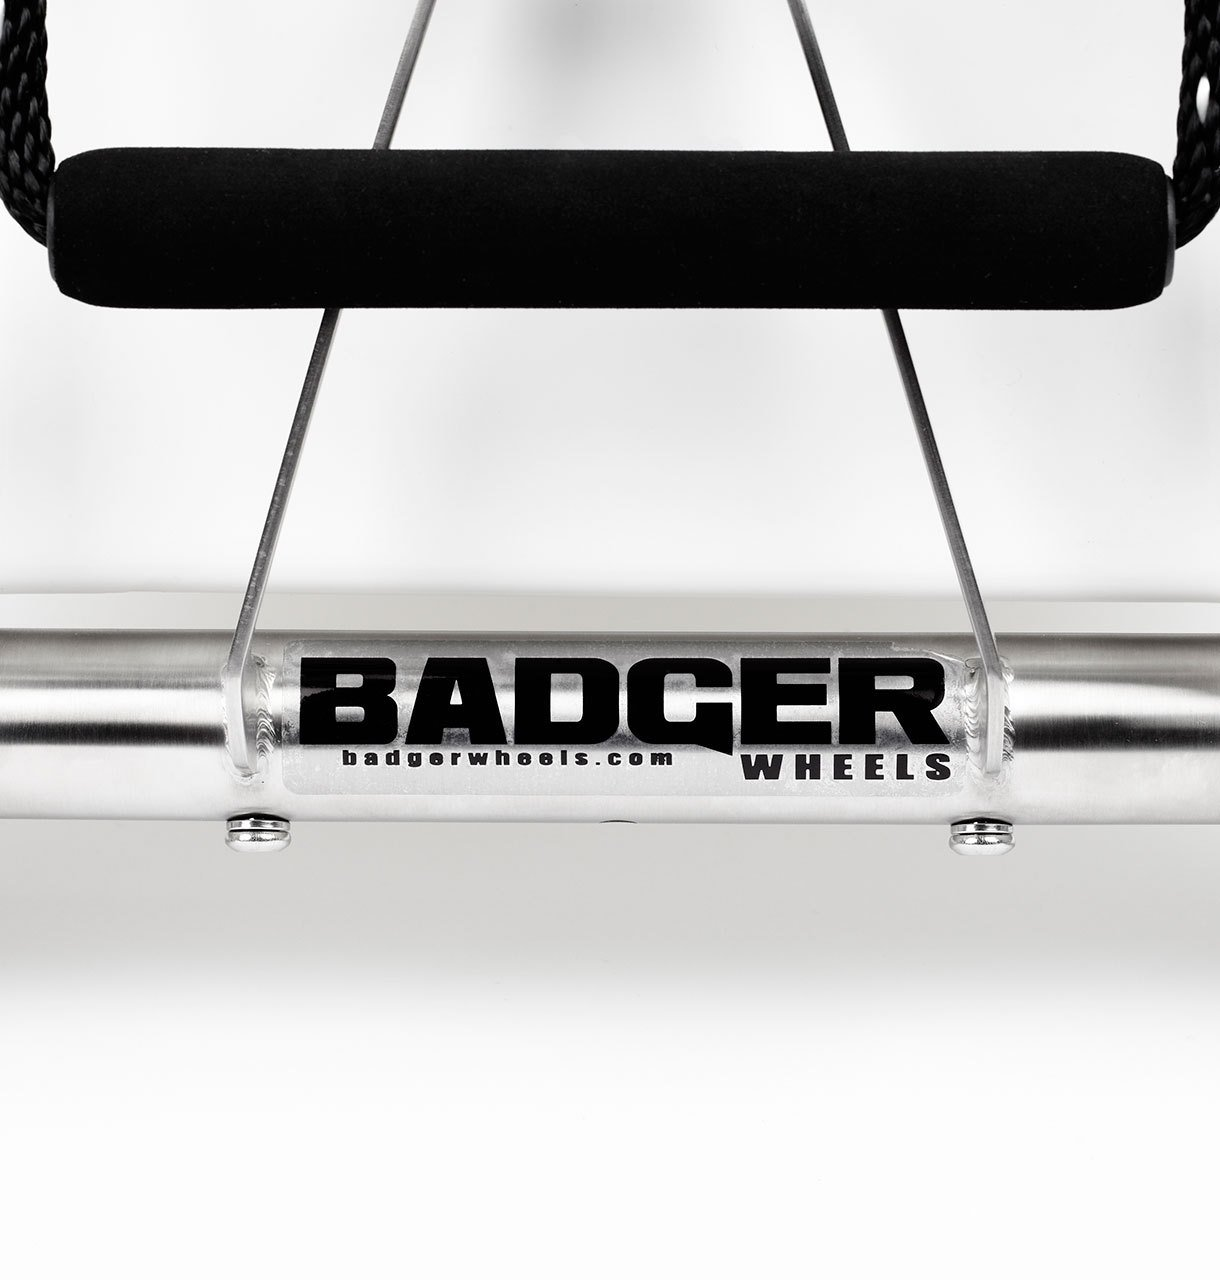 Badger Wheels - Single Axle for Yeti Tundra 35-160 by Badger Wheels (Image #5)